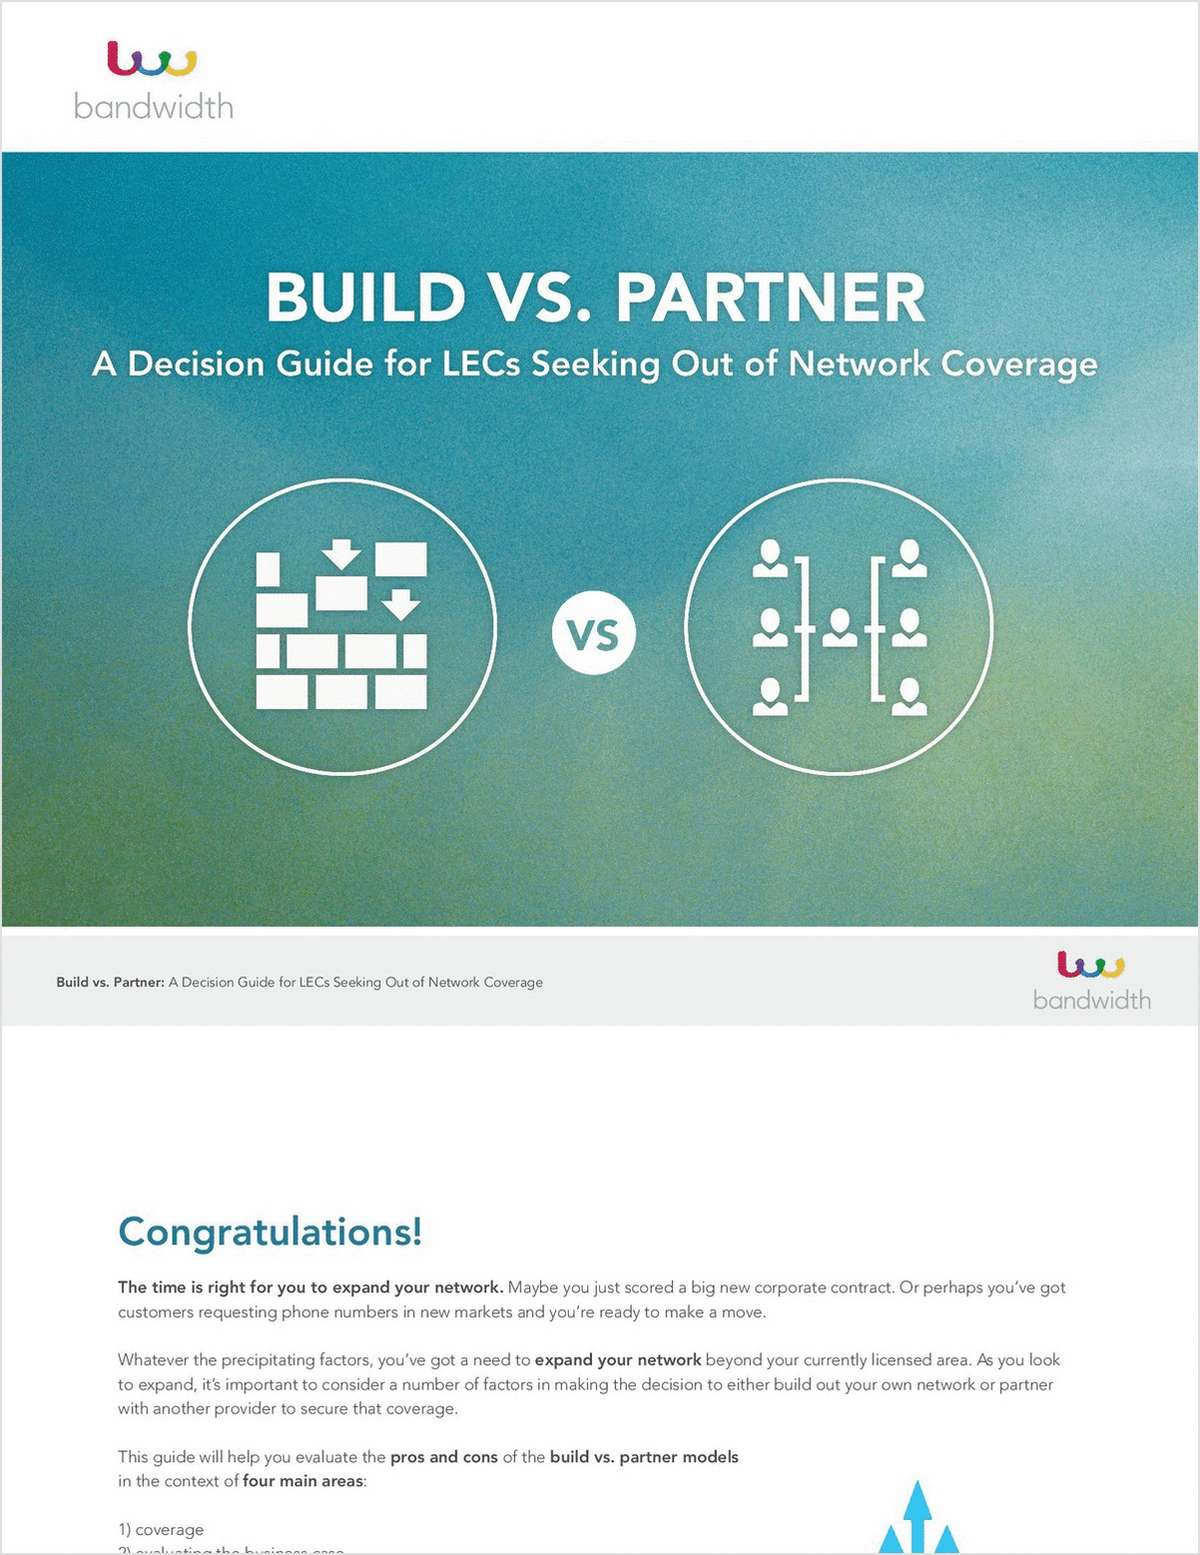 Build Vs. Partner: A Decision Guide for LECs Seeking Out of Network Coverage